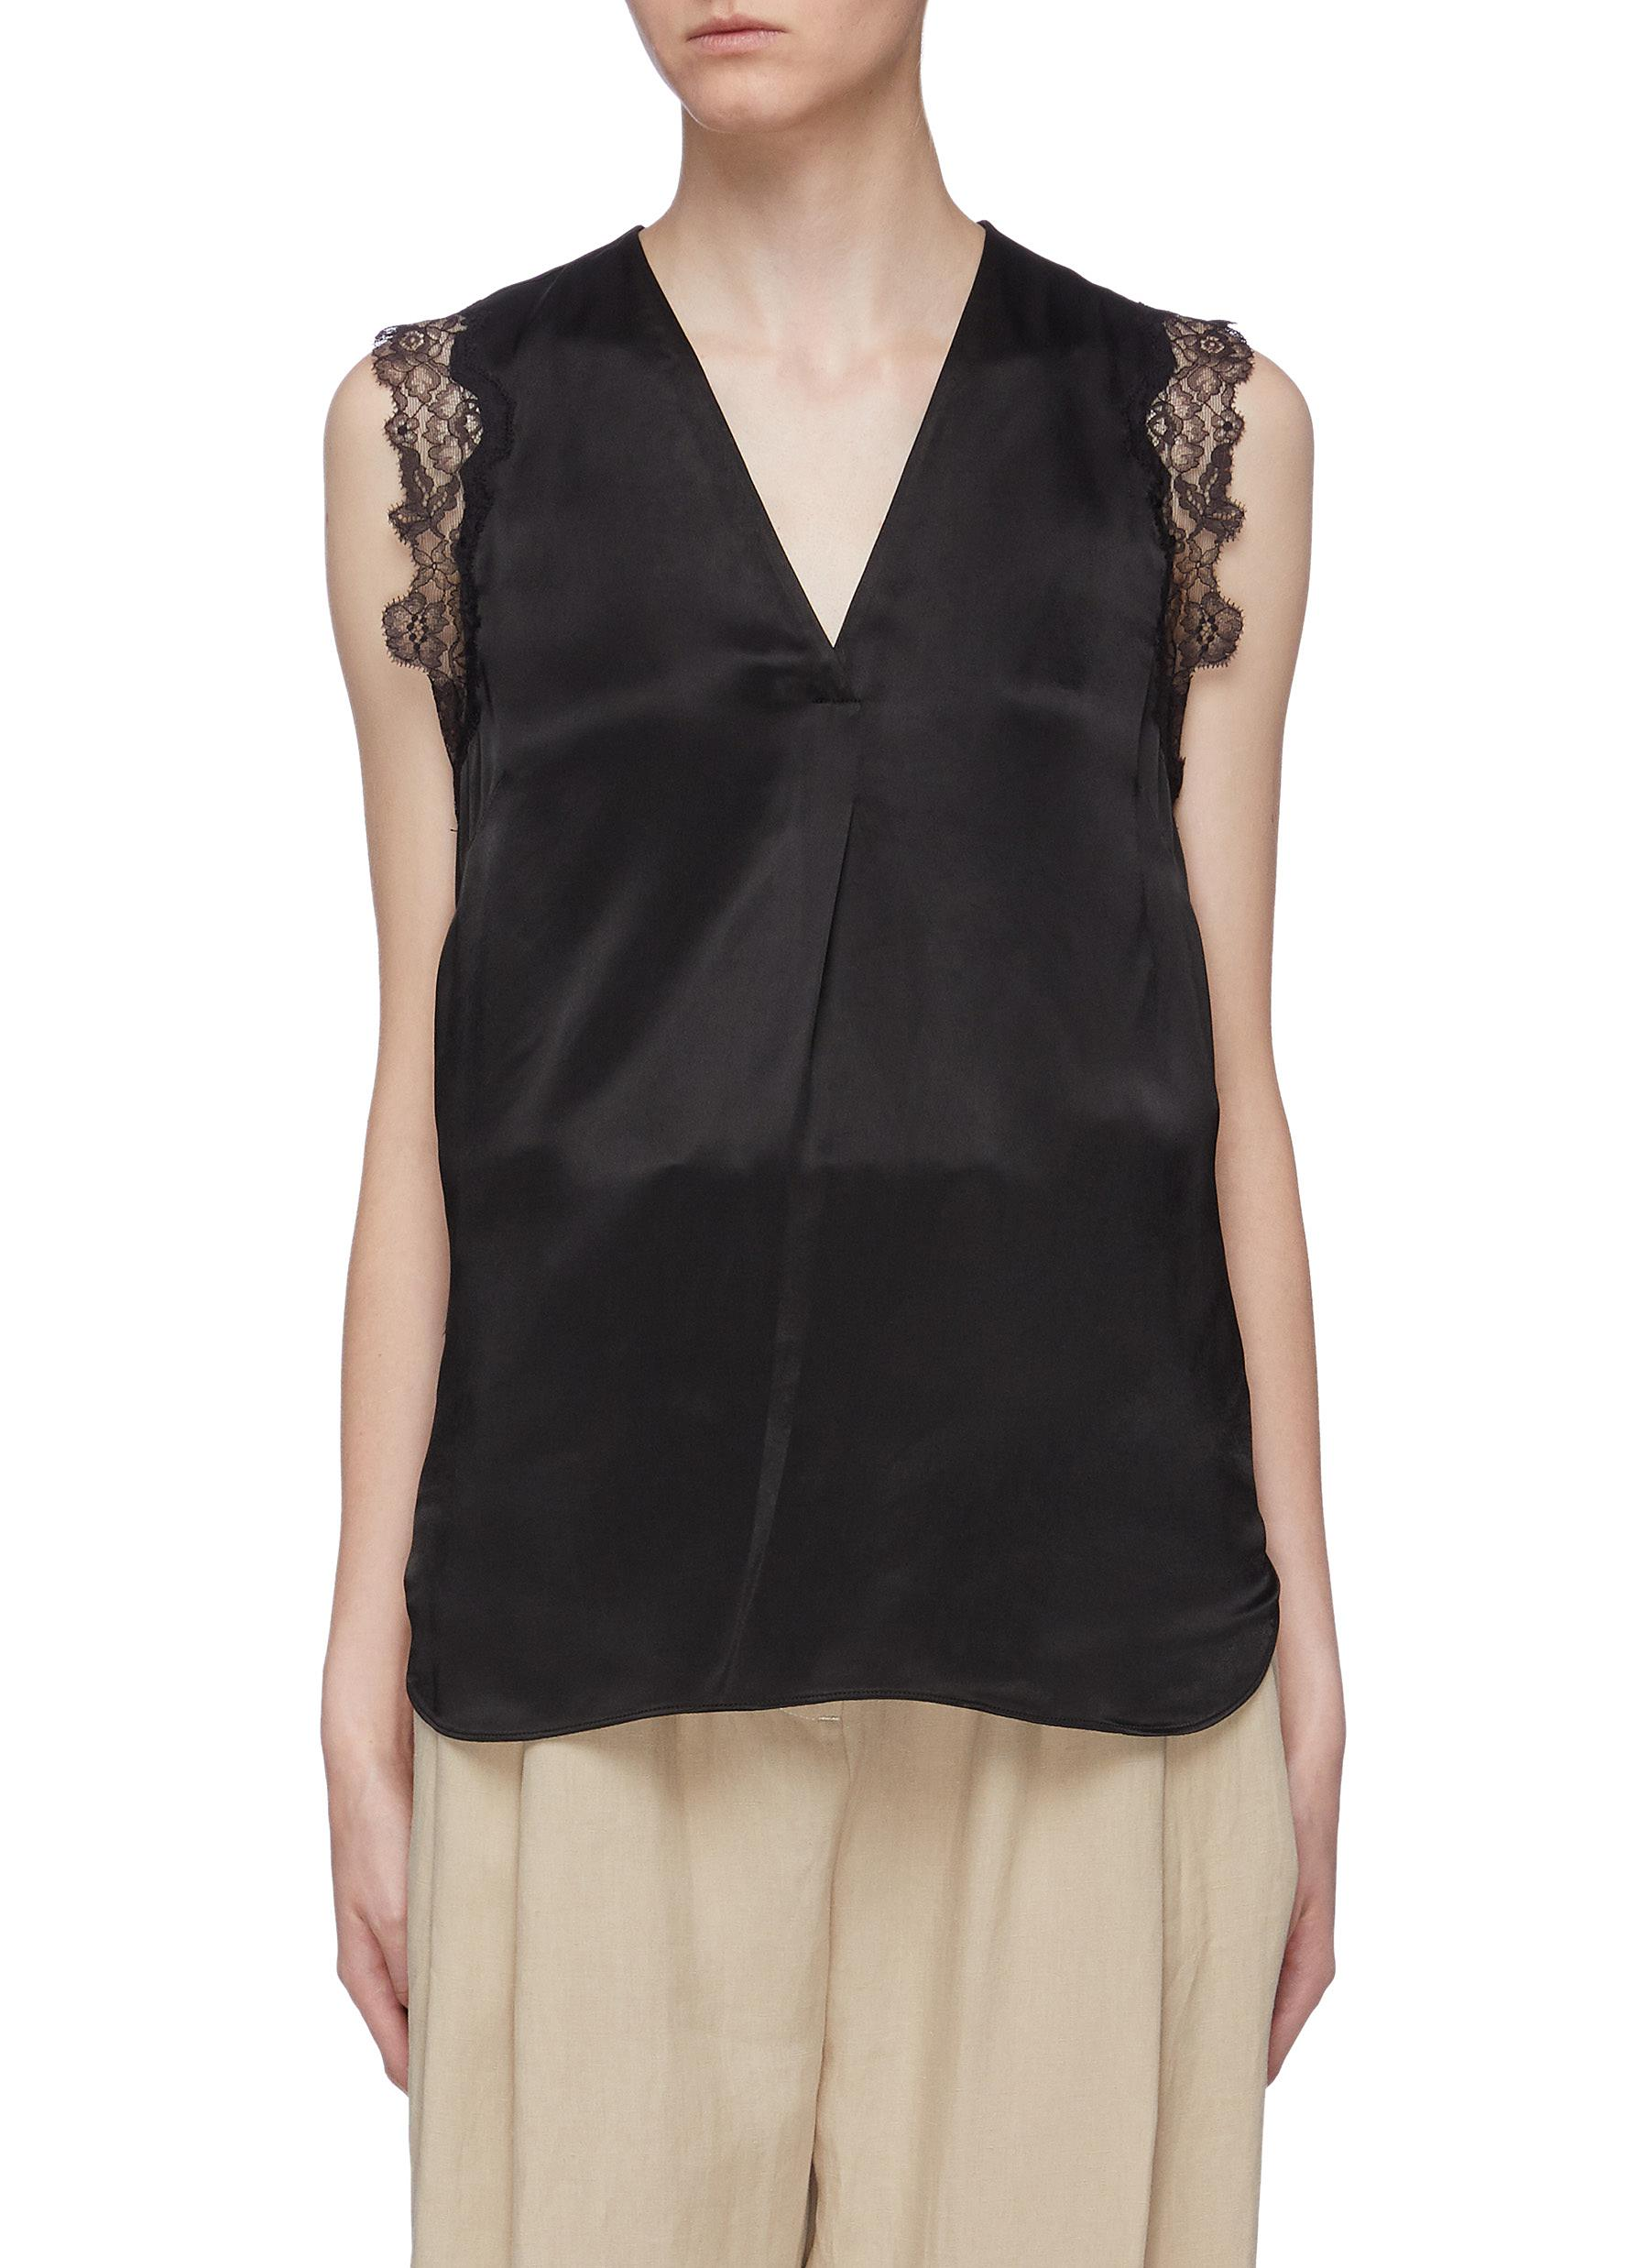 Chantilly lace trim satin V-neck top by 3.1 Phillip Lim